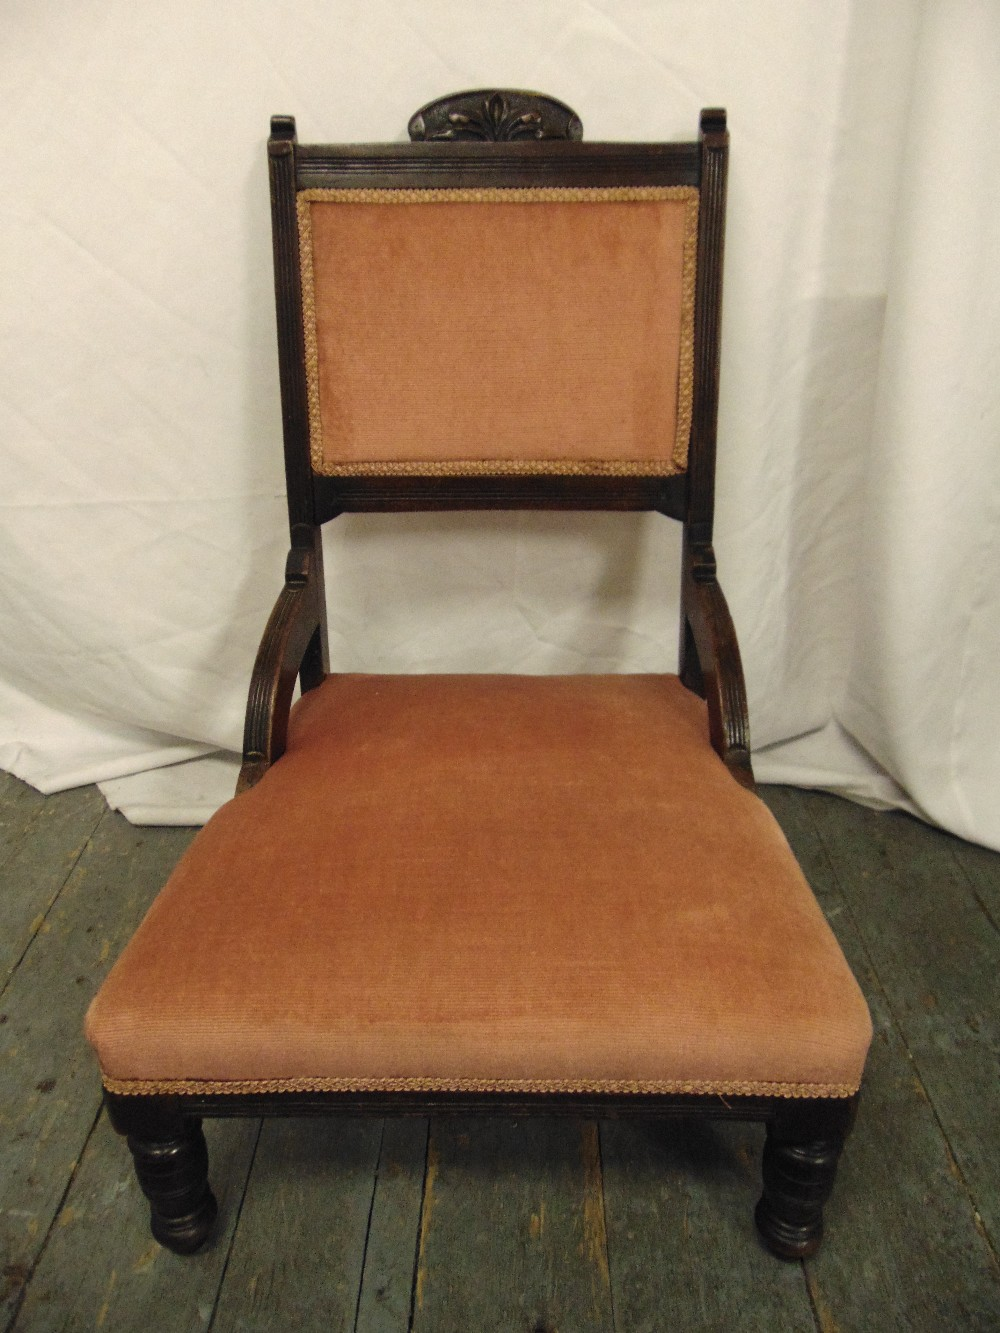 Lot 25 - An Edwardian mahogany upholstered nursing chair on turned cylindrical legs